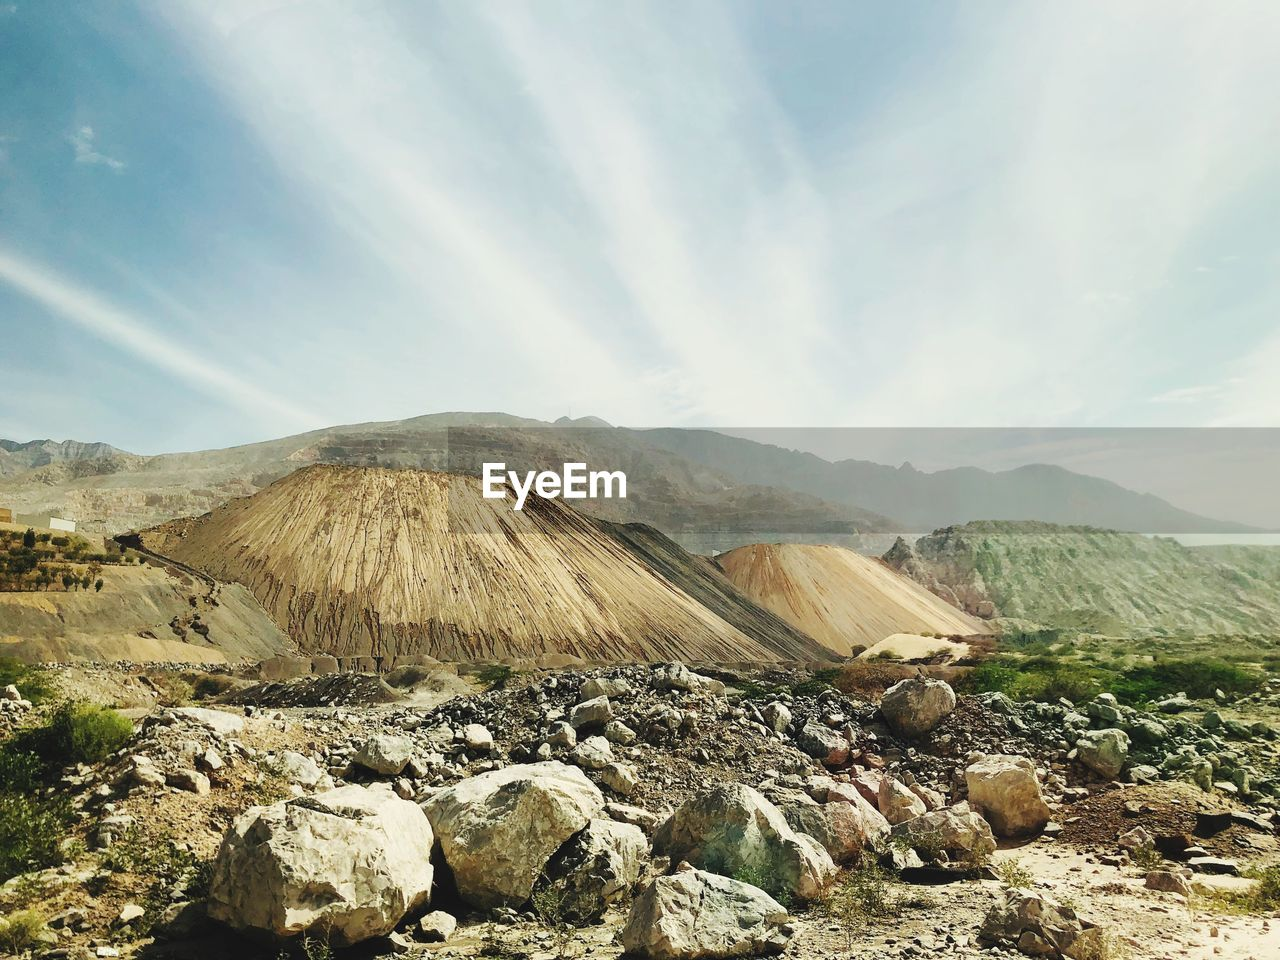 mountain, sky, scenics - nature, beauty in nature, cloud - sky, environment, landscape, nature, tranquil scene, day, no people, non-urban scene, tranquility, land, volcano, idyllic, solid, rock, mountain range, remote, outdoors, mountain peak, volcanic crater, formation